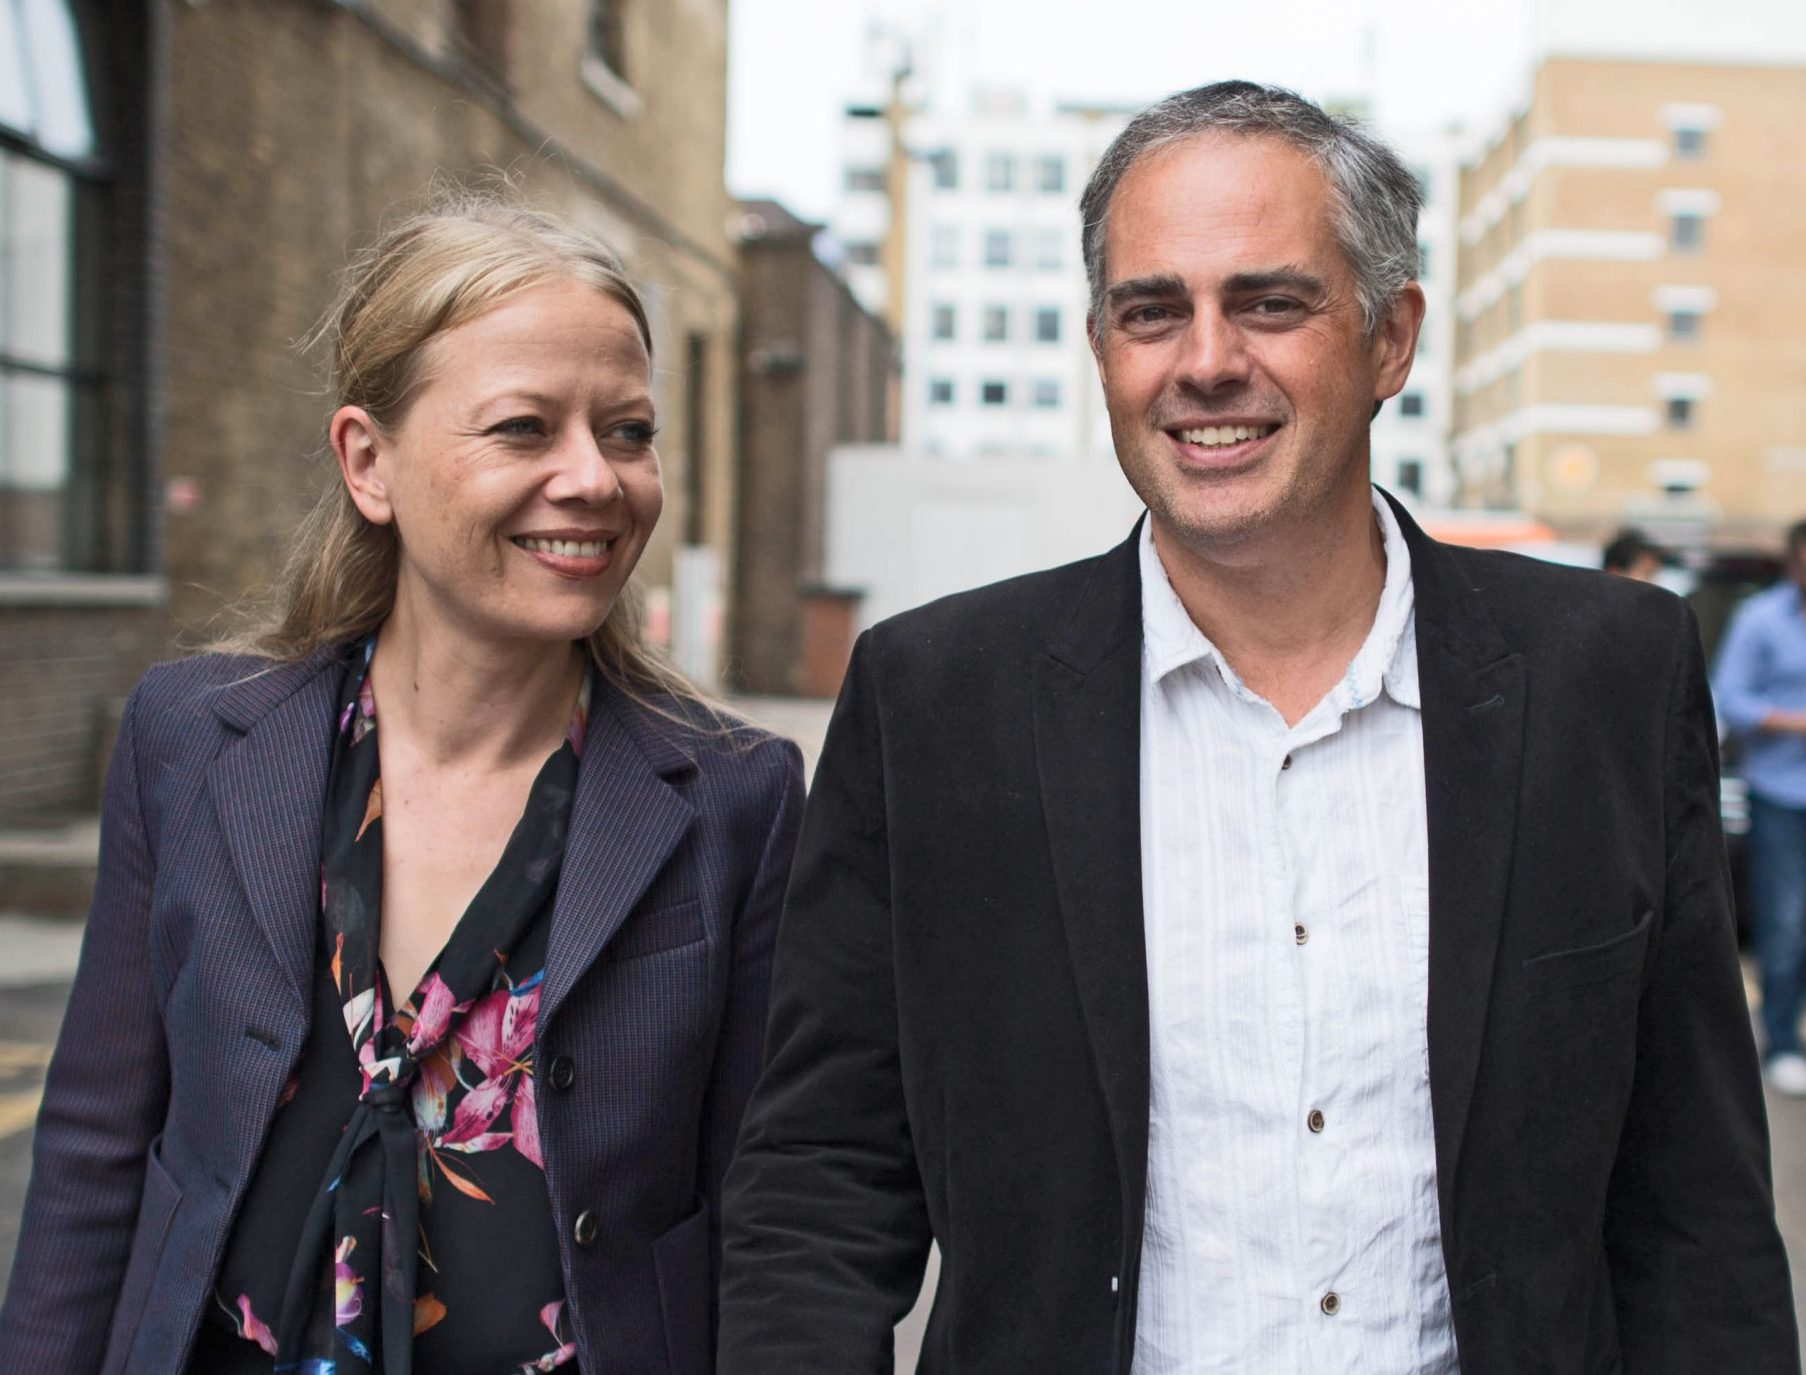 Politics is full of infighting and empty promises – the Green Party's new leadership is a breath of fresh air